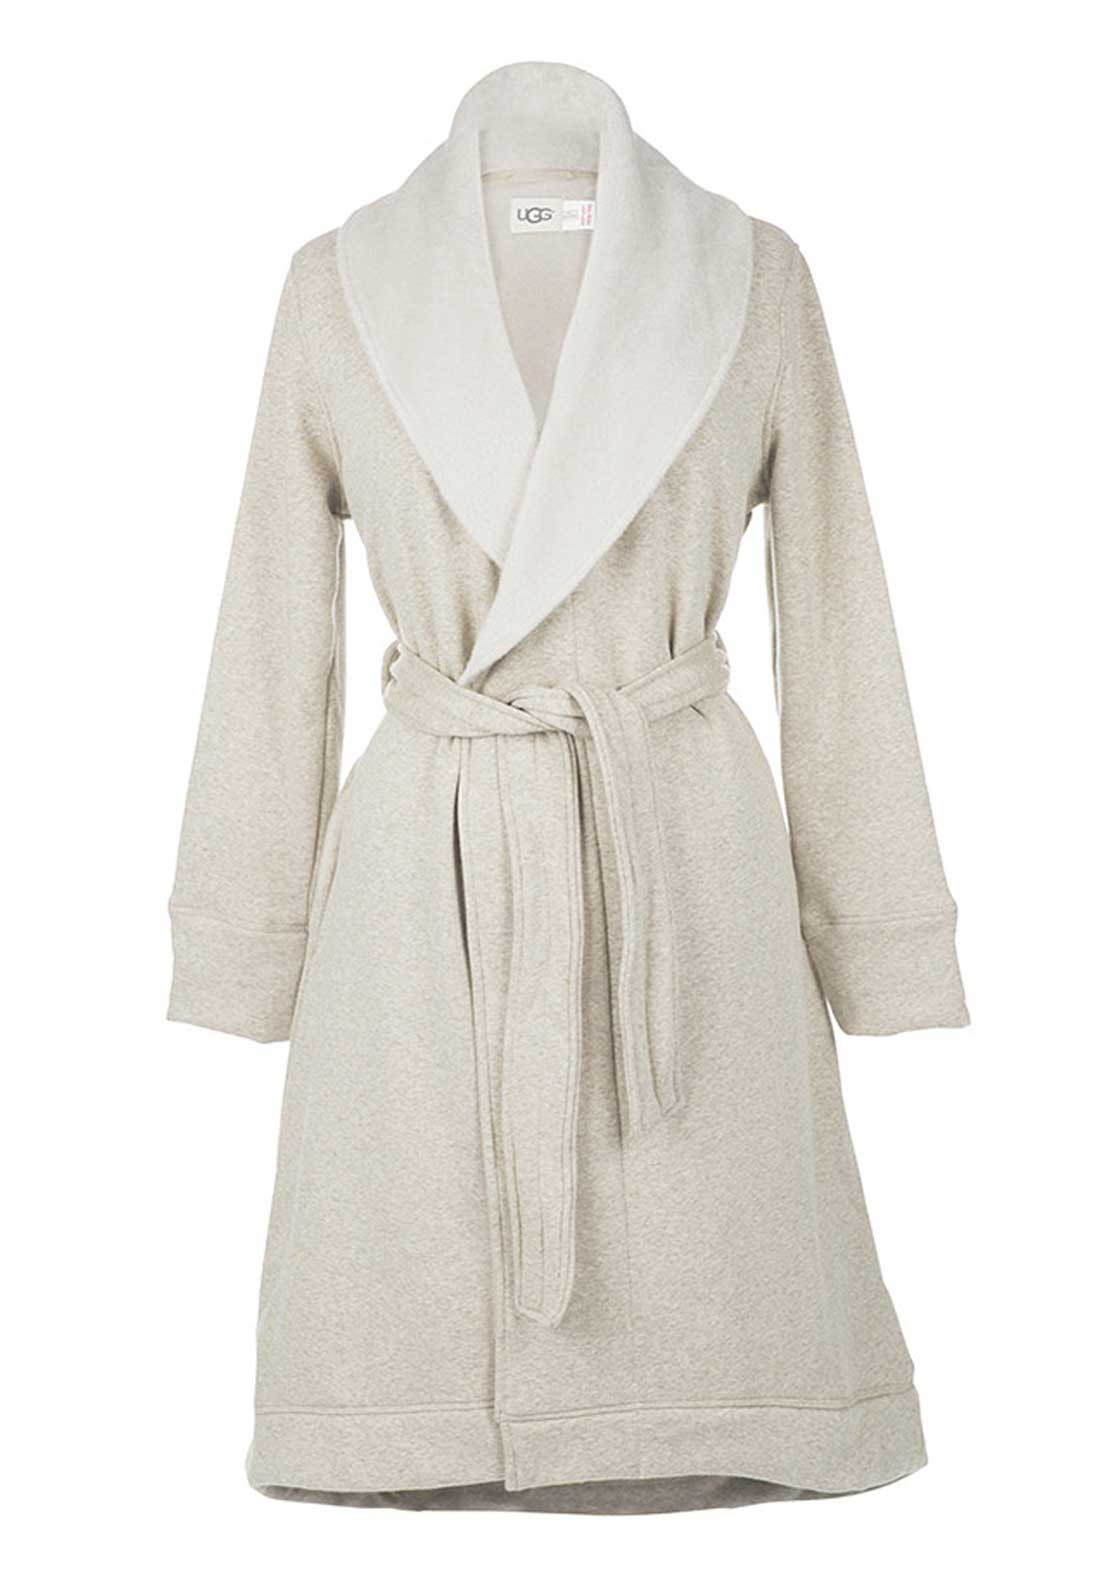 UGG Australia Womens Duffield Dressing Gown, Oatmeal